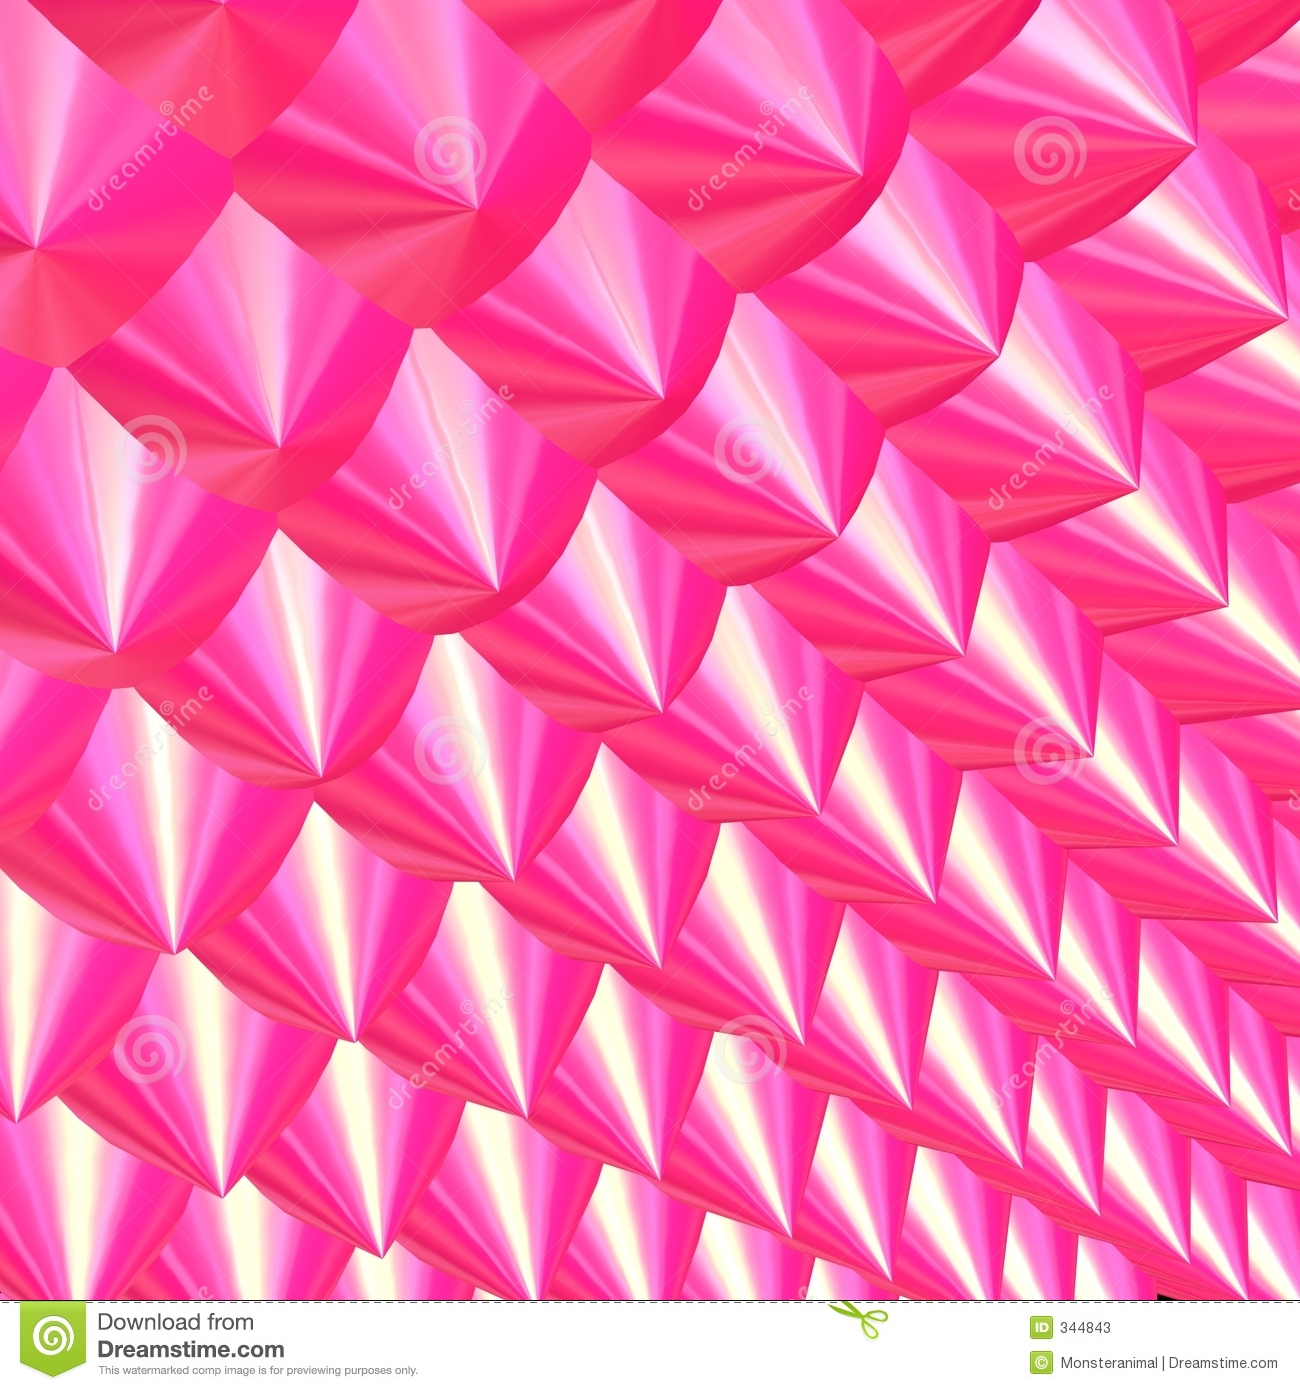 Breast Cancer 3d Wallpaper For Pc 3d Pricks Da Cor De Rosa Fotos De Stock Imagem 344843